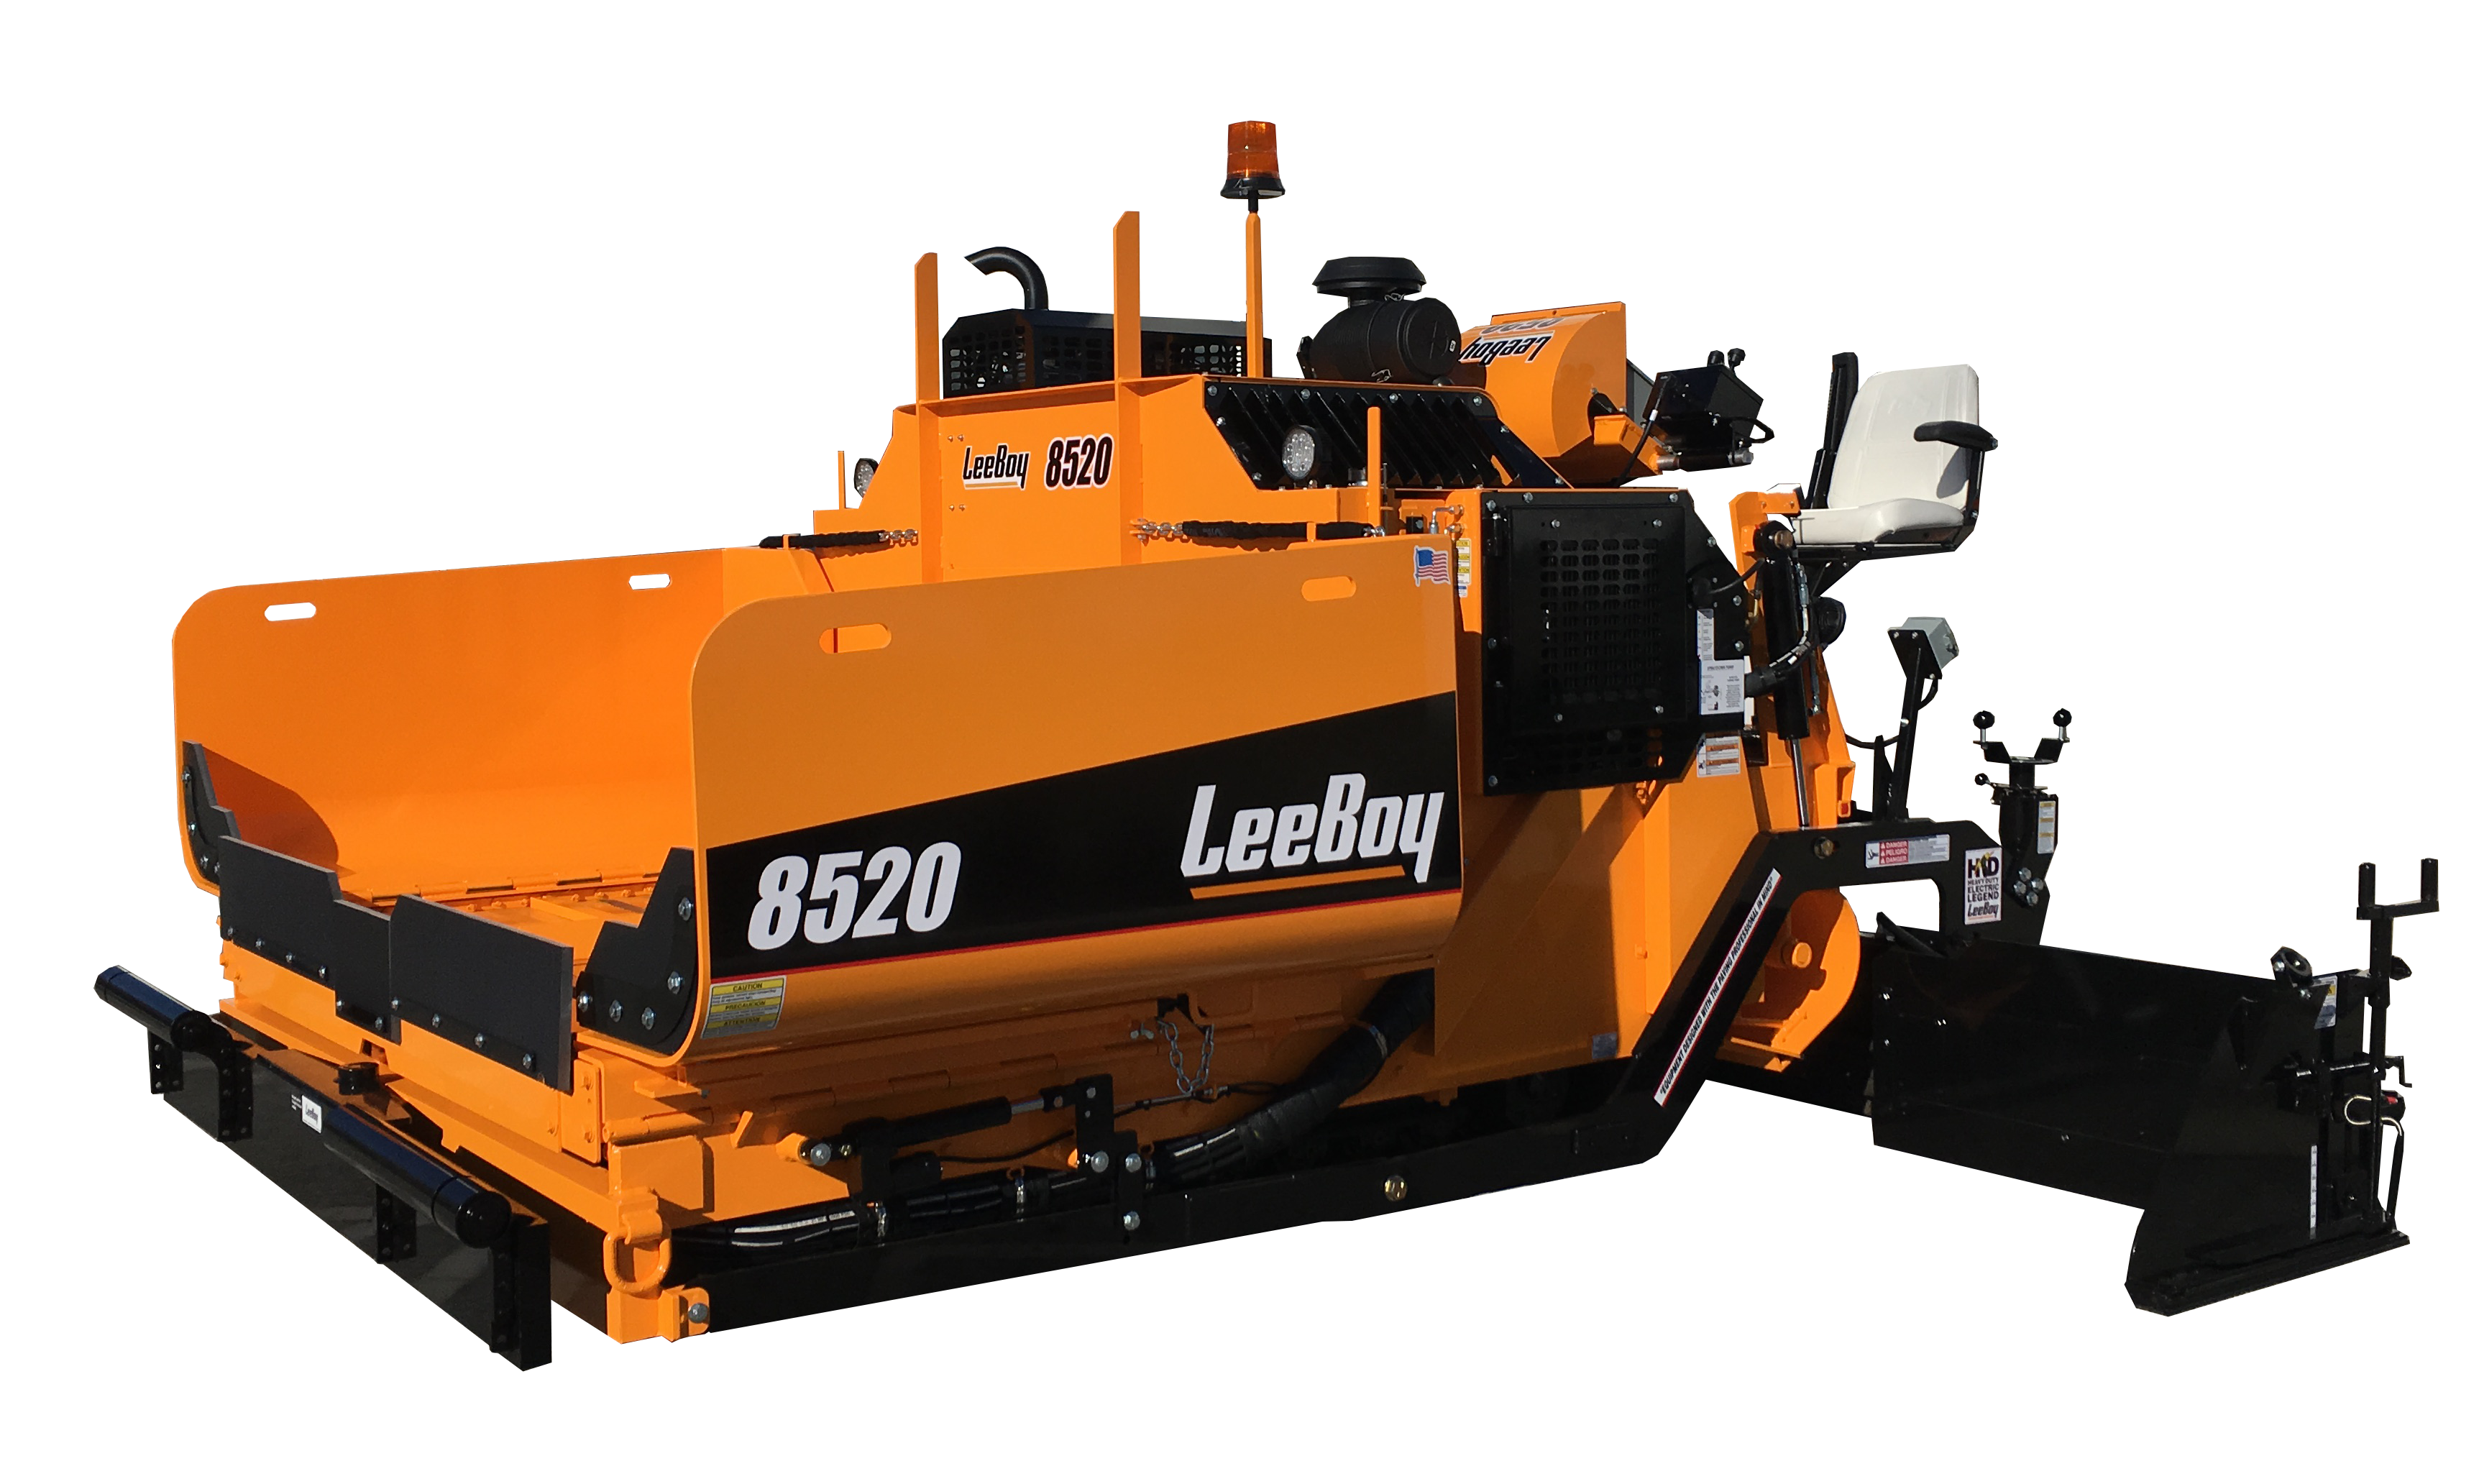 The new 8520 Asphalt Paver from LeeBoy was on display at CONEXPO-CON/AGG.